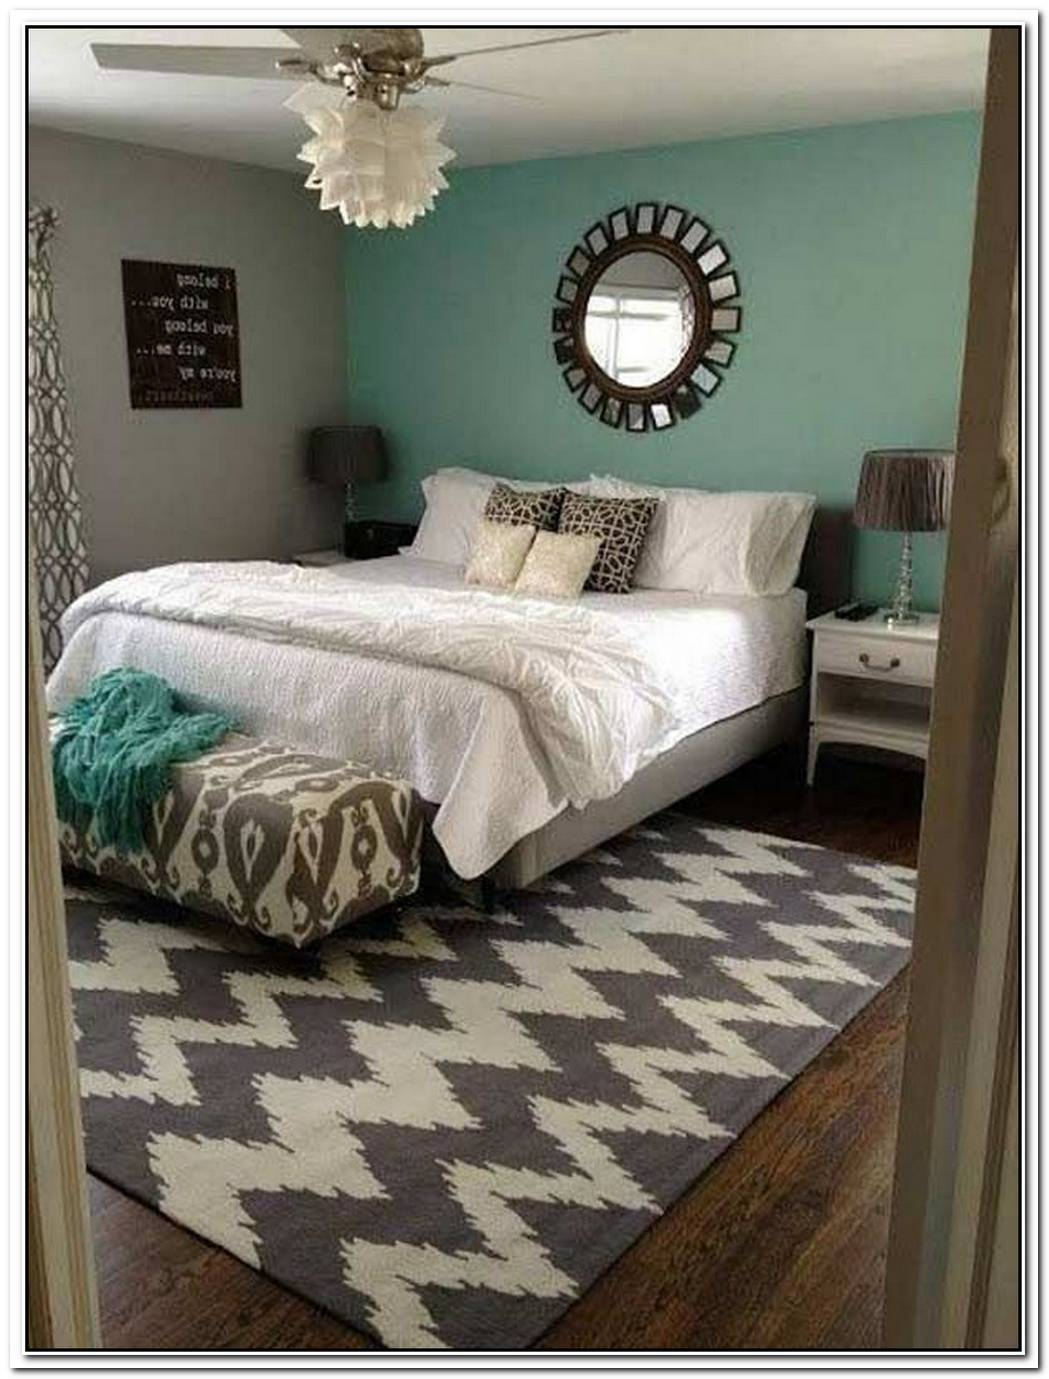 Whimsical Patterns Merge With Sophisticated Colors For A Stunning Bedroom Design